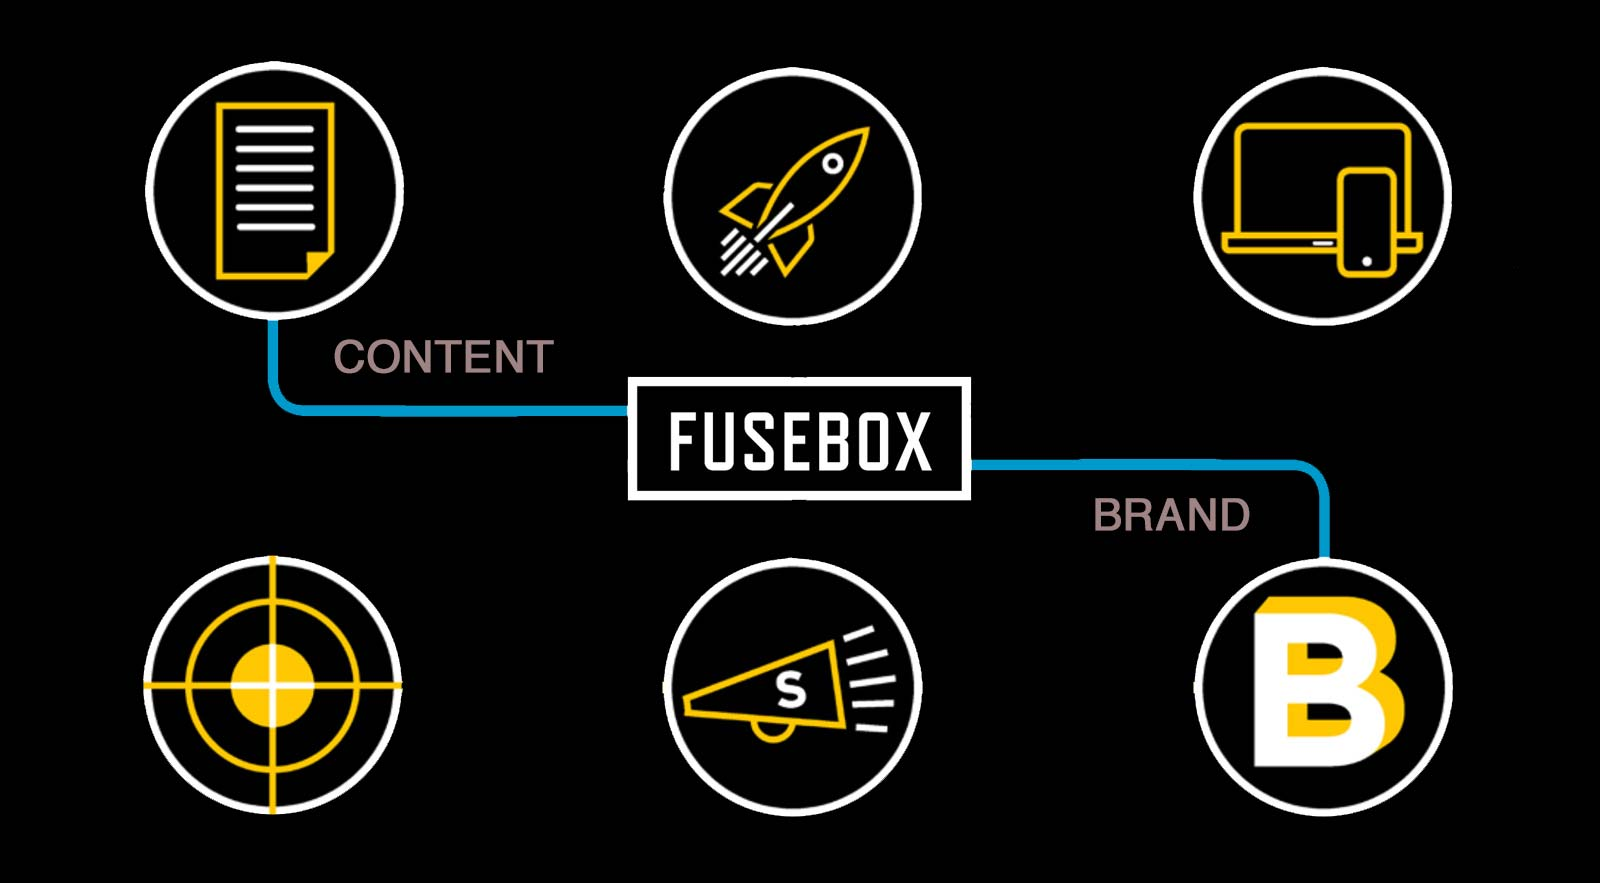 Fusebox - focus on content and brand